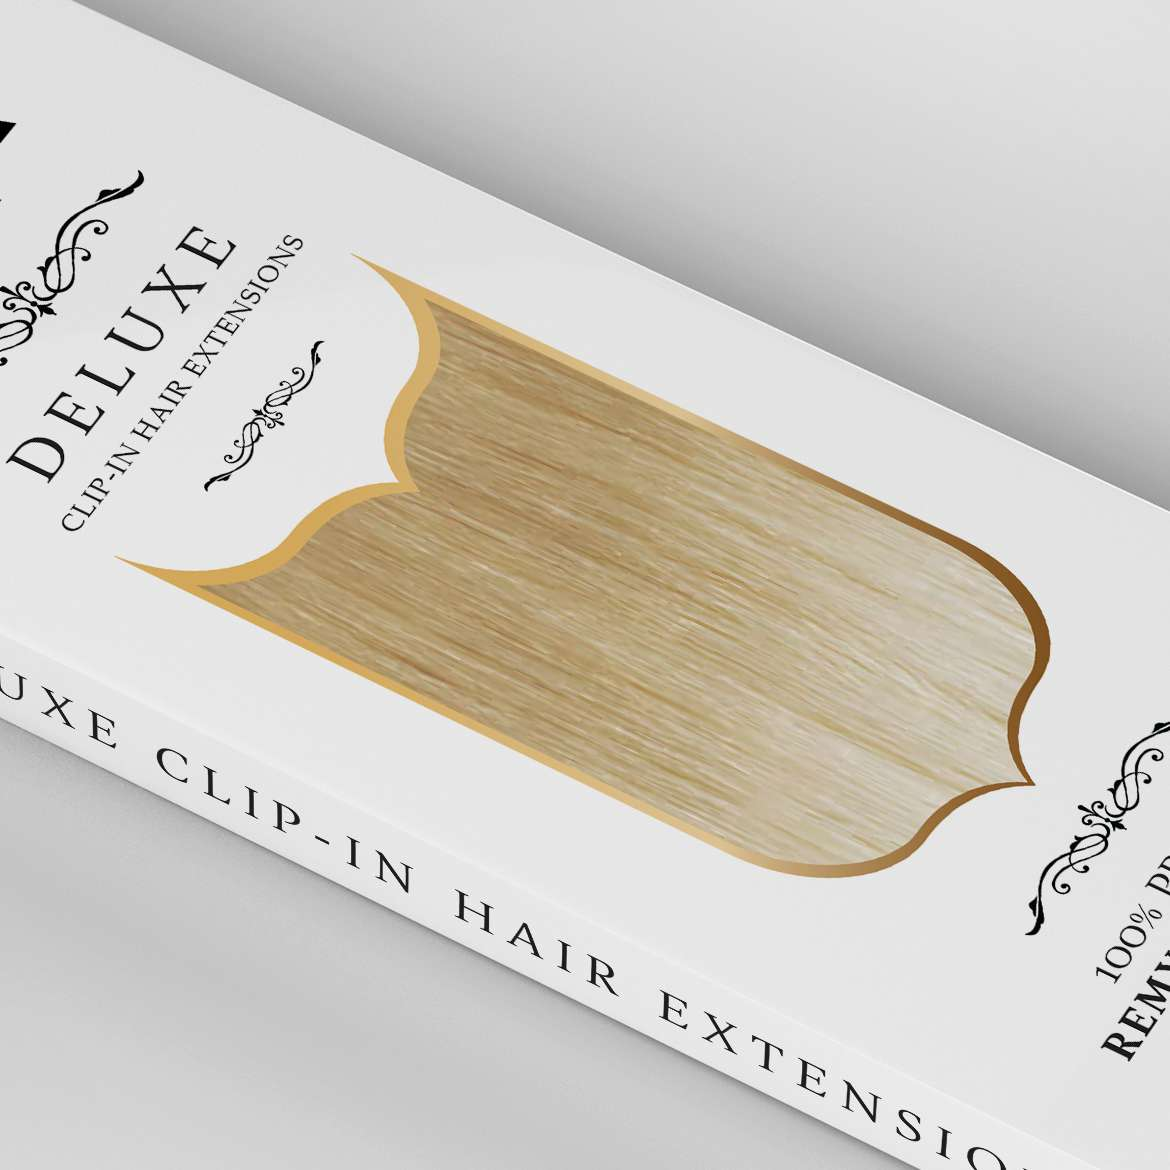 deluxe-clip-in-hair-extensions-packaging-design-remy-angled-close-up-image